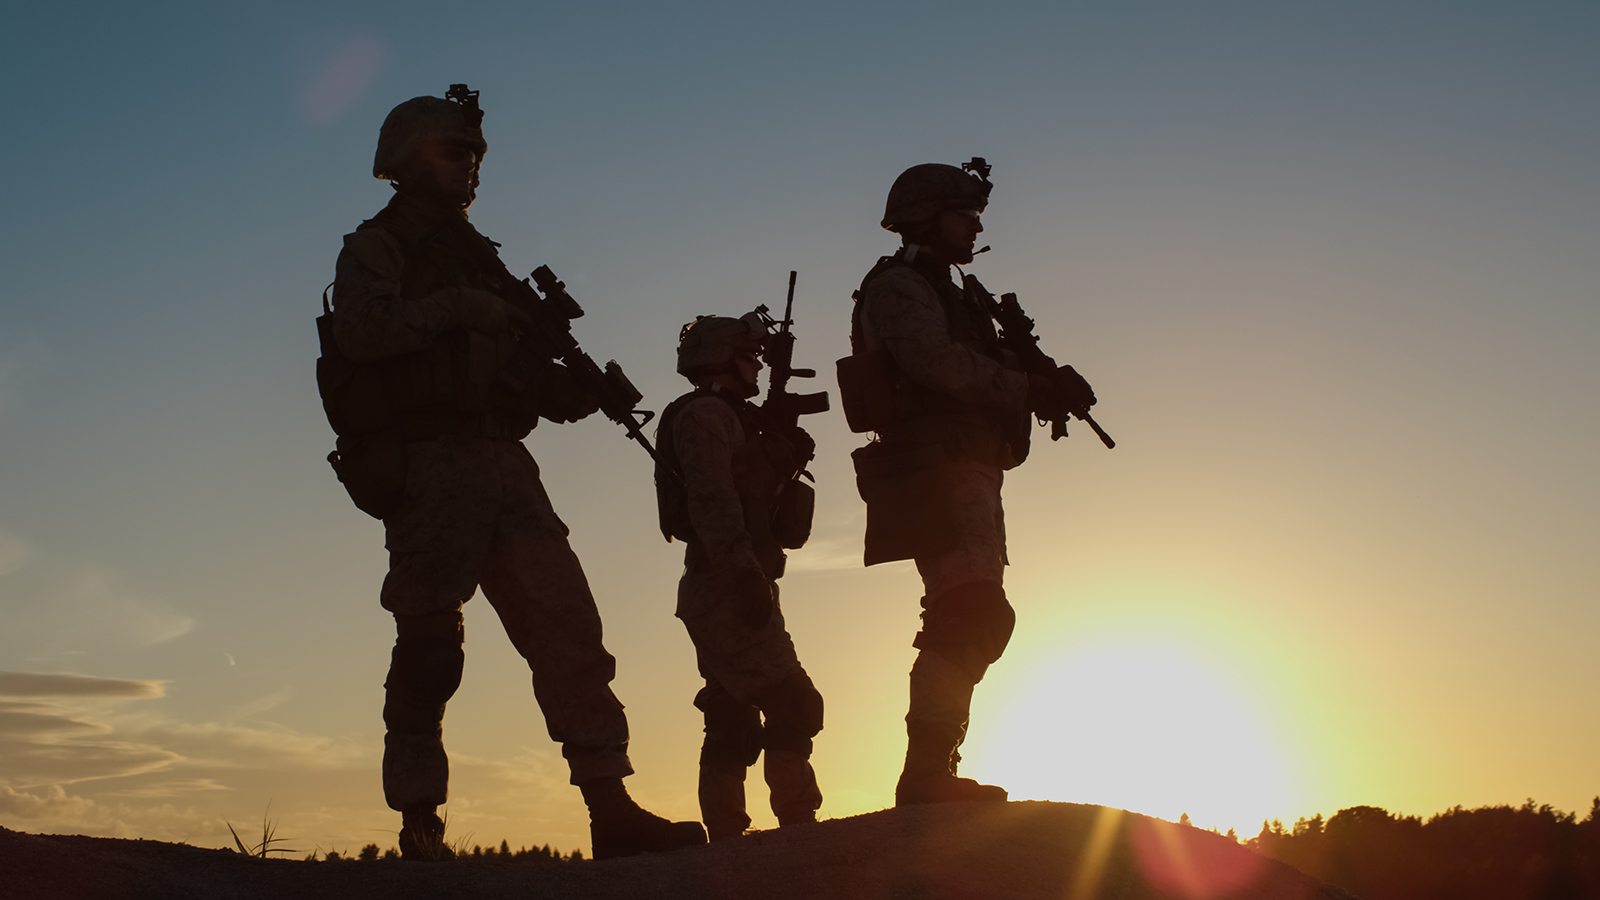 Soldiers standing on hilltop